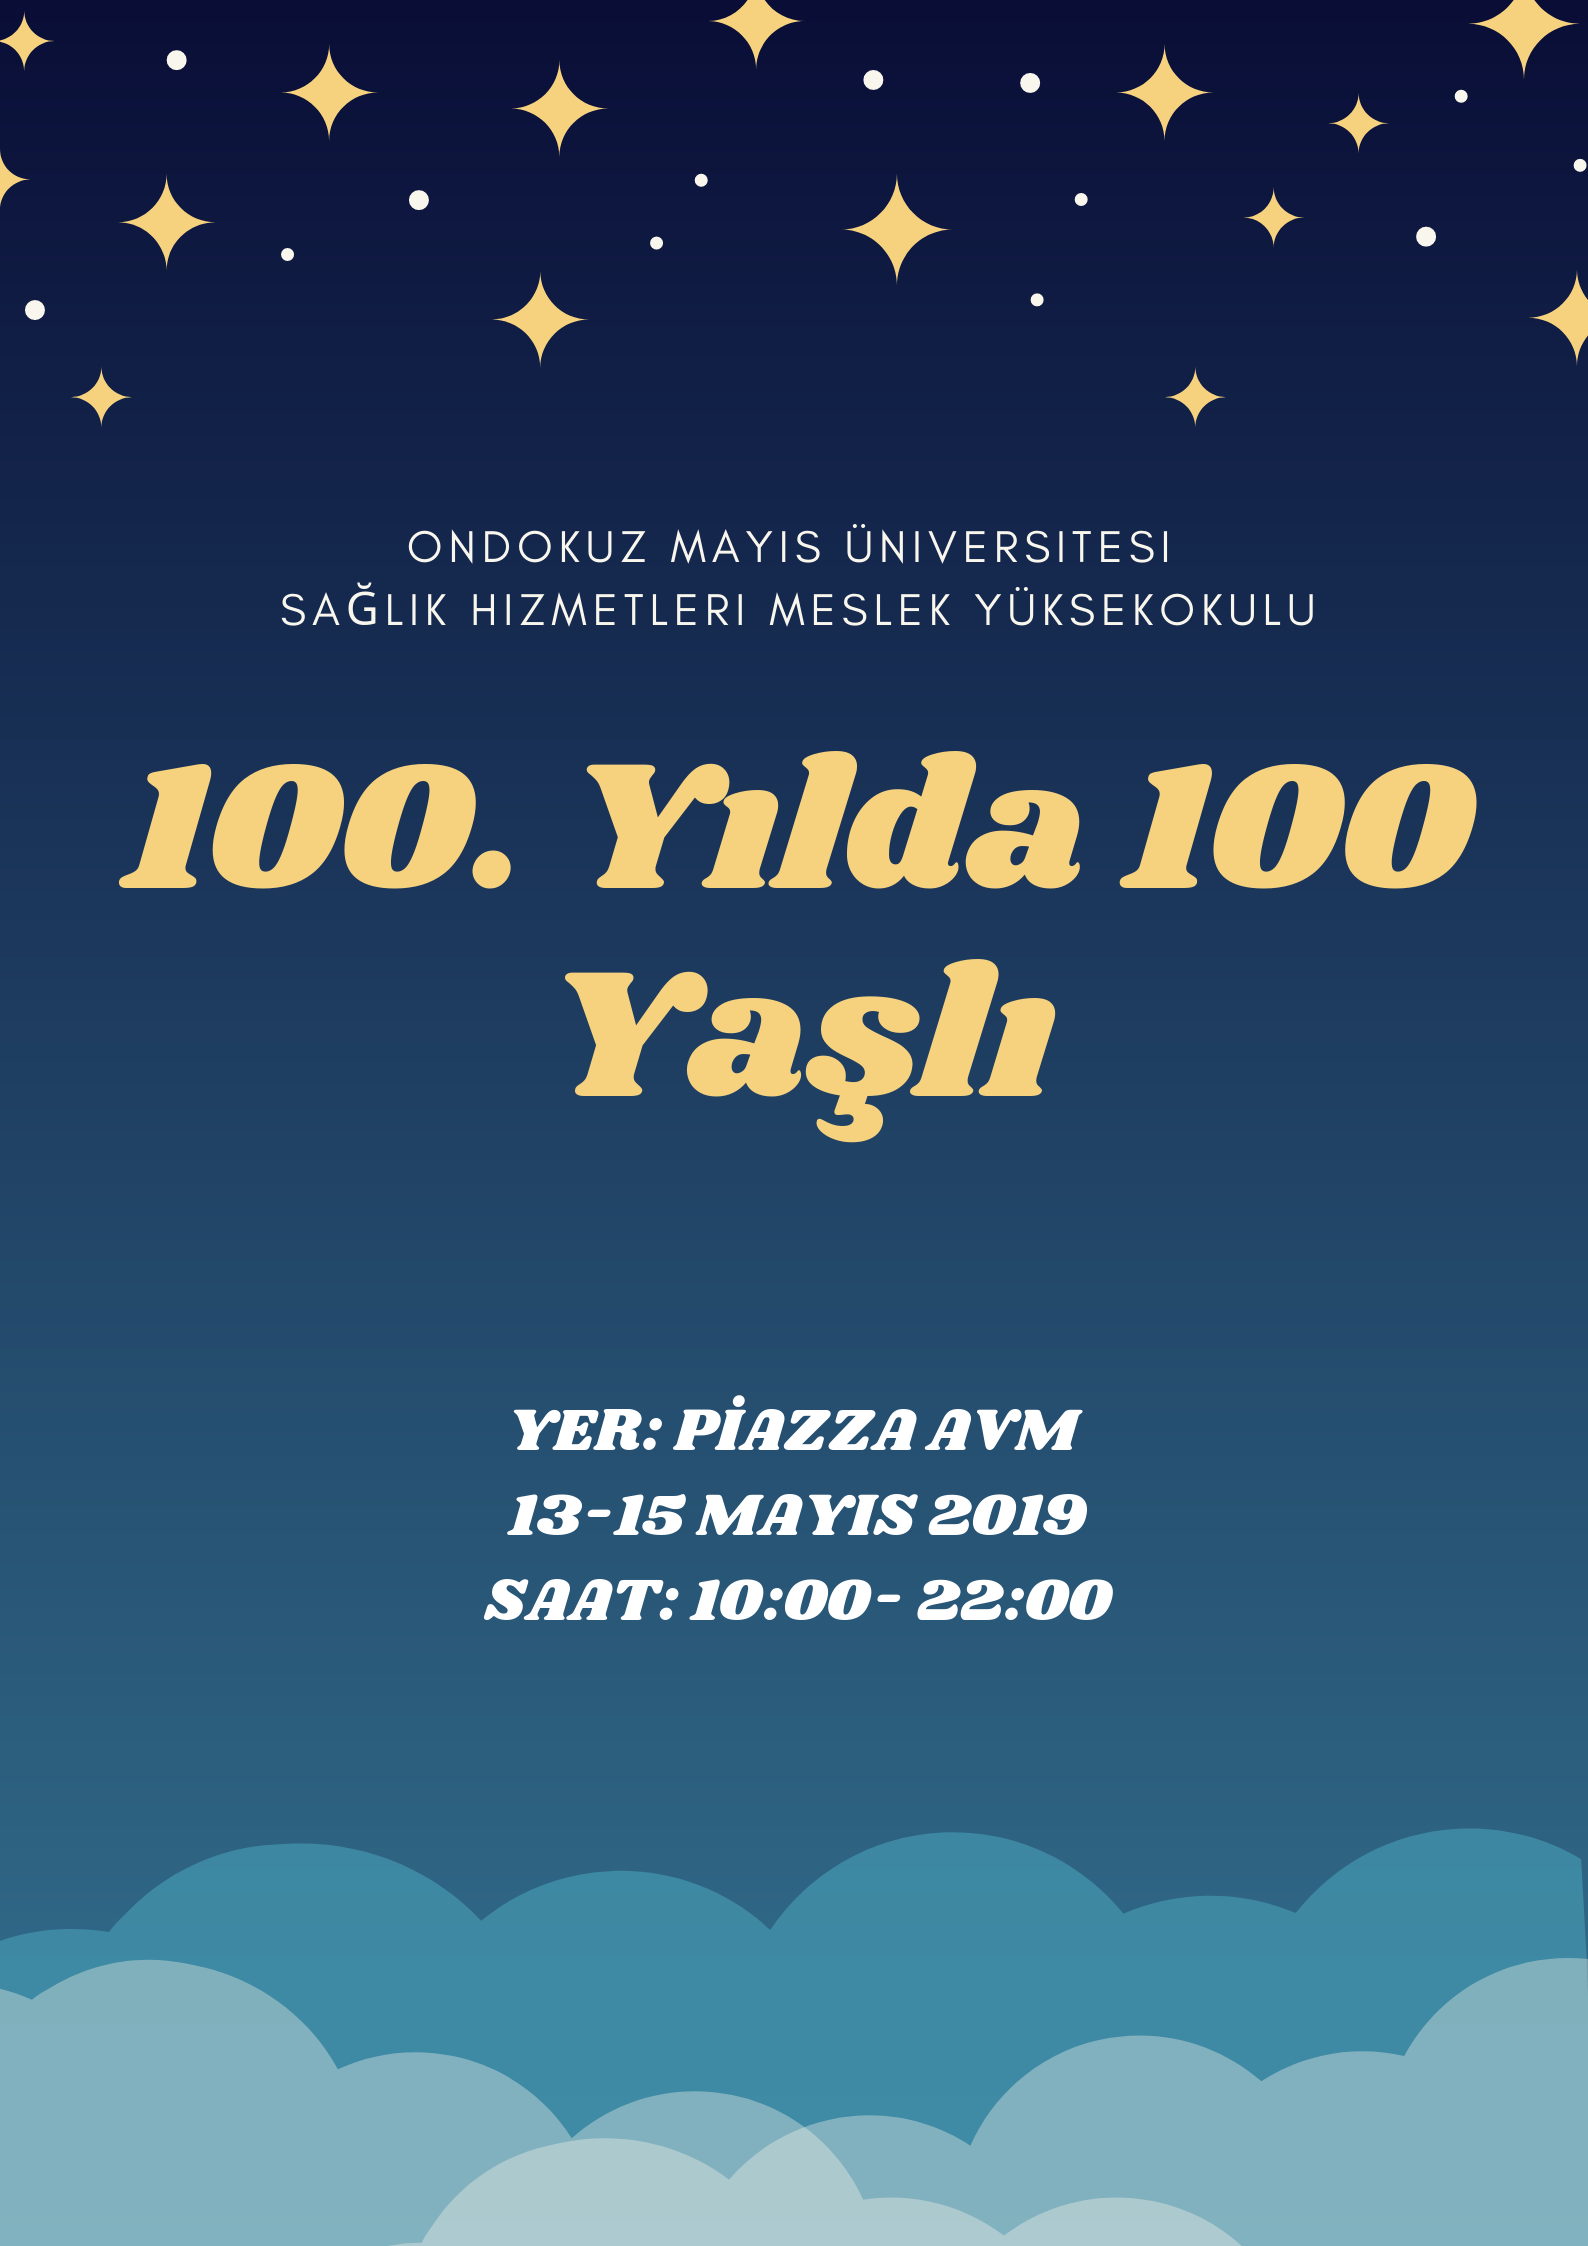 http://www.omu.edu.tr/sites/default/files/yer_piazza_avm_13-15_mayis_2019.png